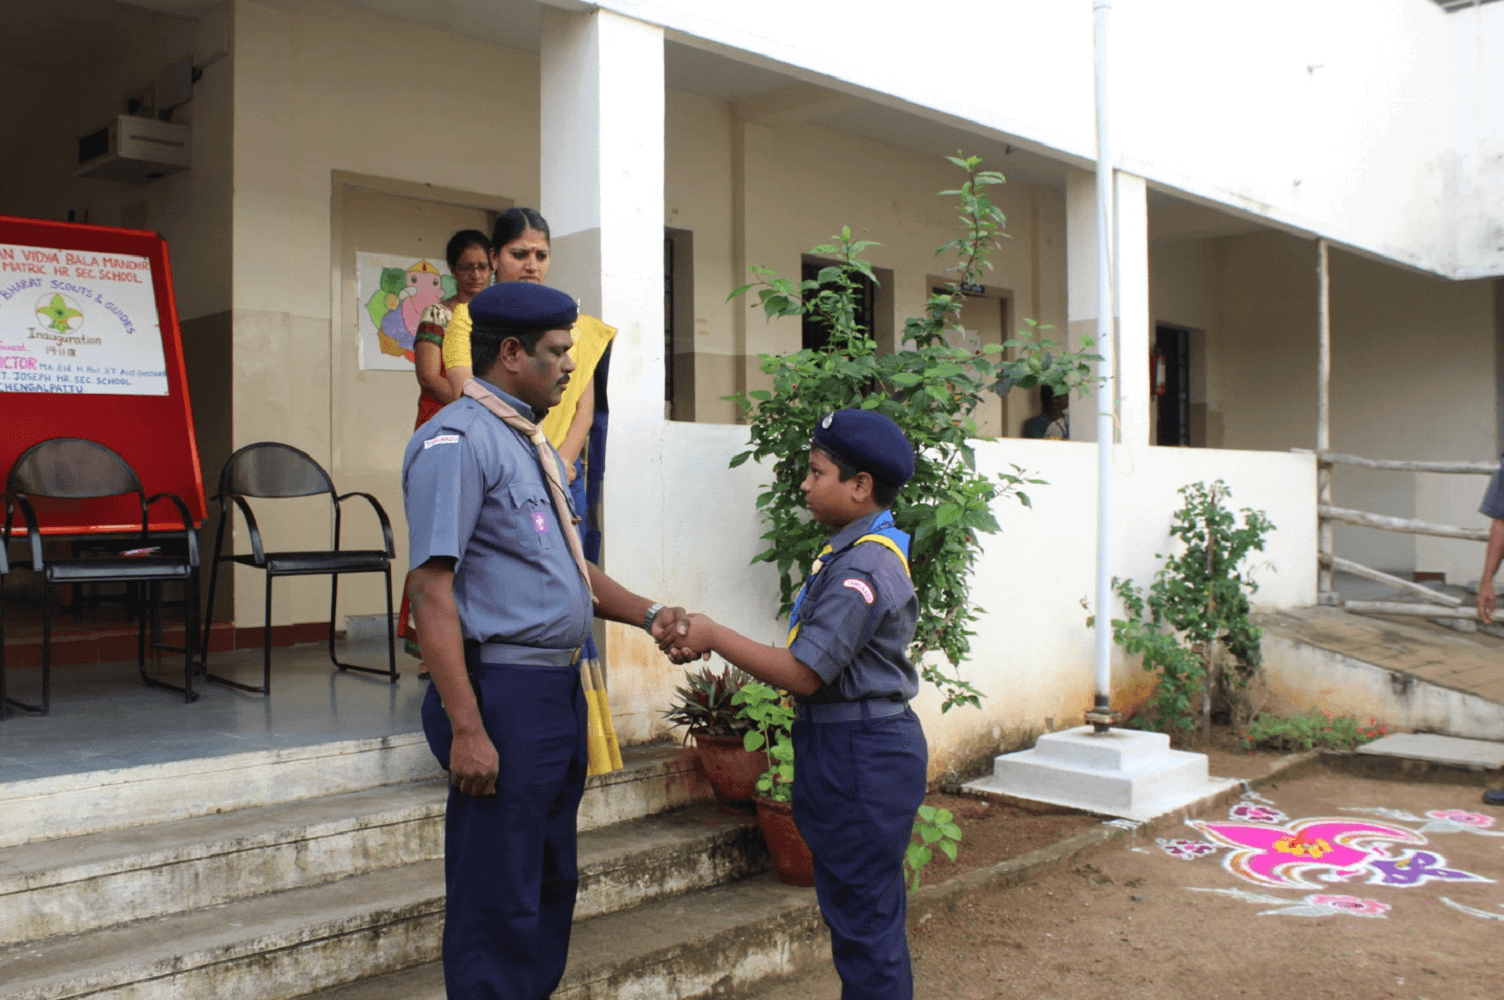 The left-handed handshake unites two scouts from anywhere on the planet